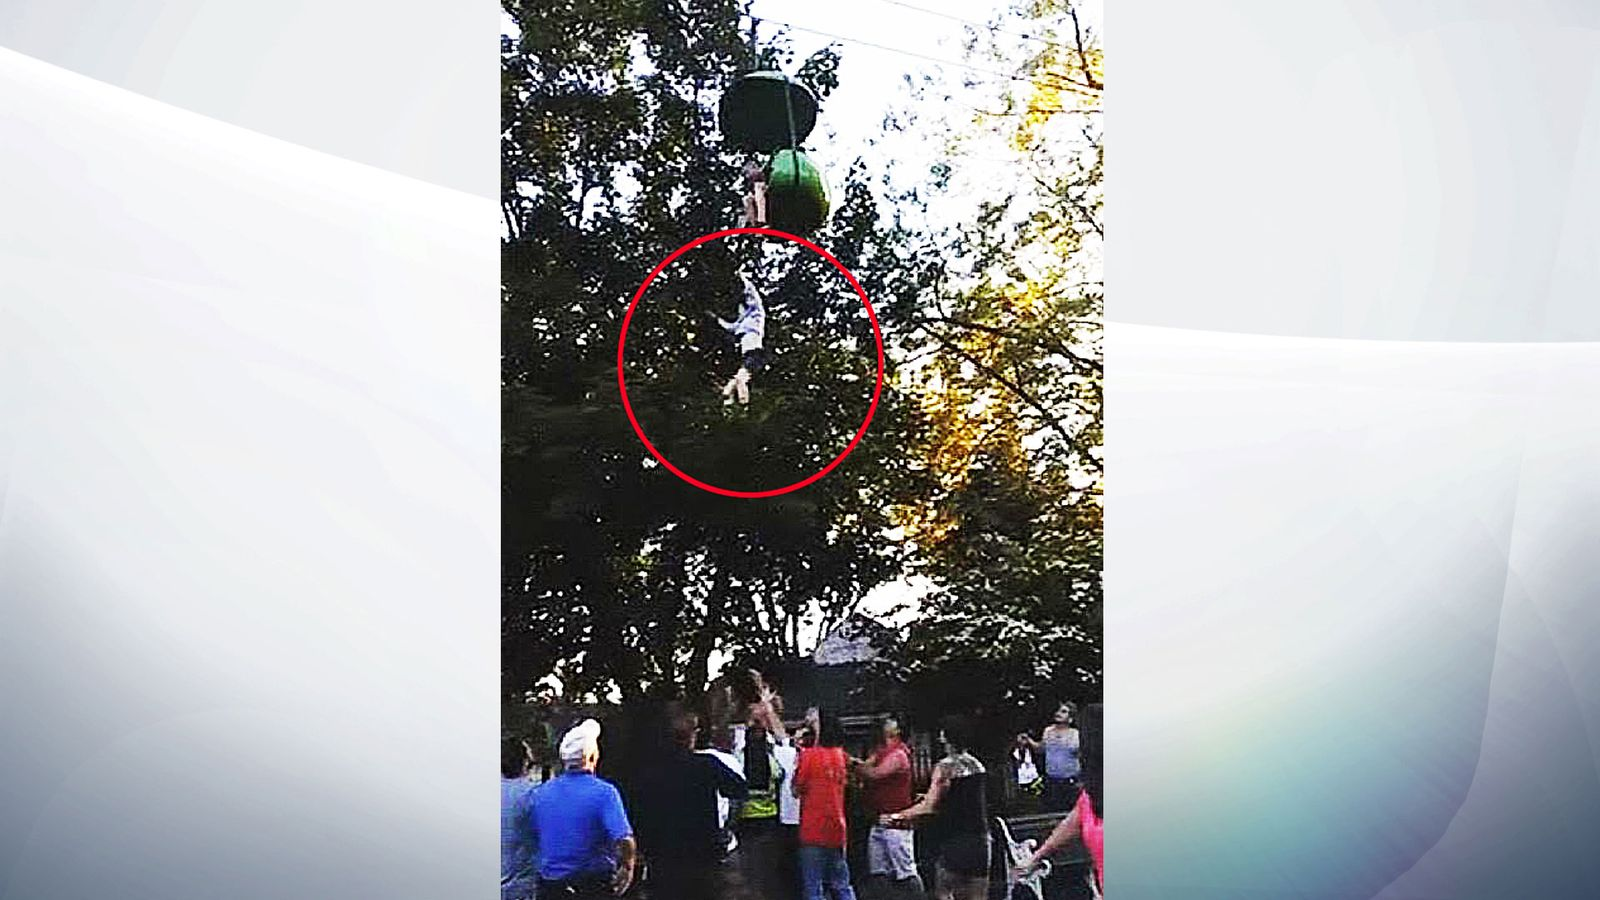 'I'll catch you, honey!': Girl caught after falling from ...